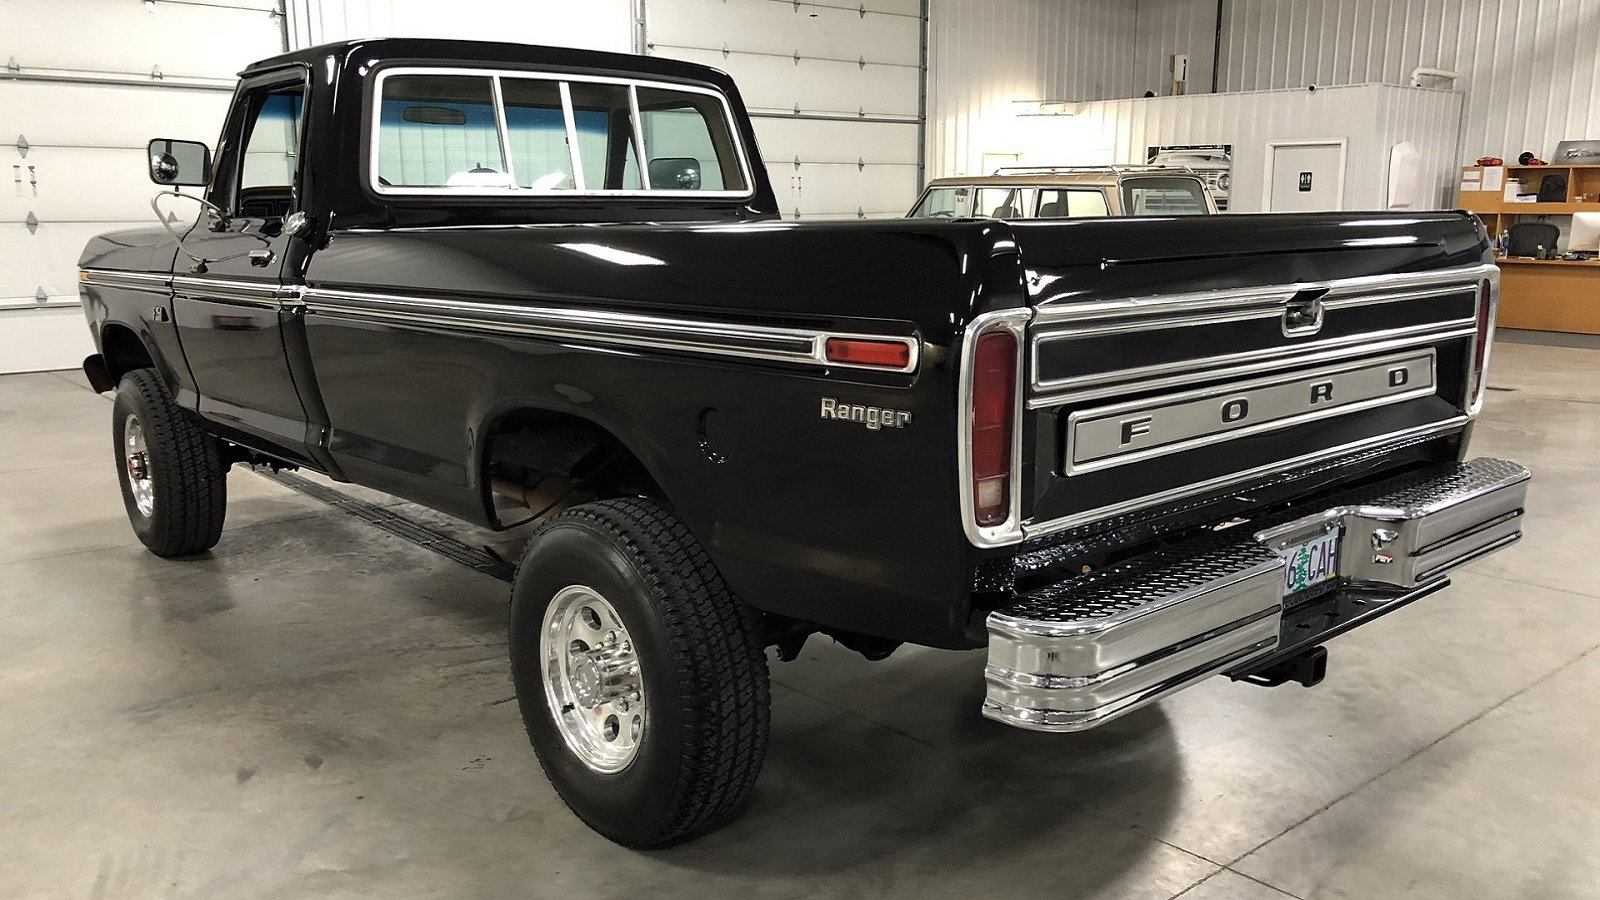 Stunningly Simple Ford F-250 Is One High Rolling Highboy